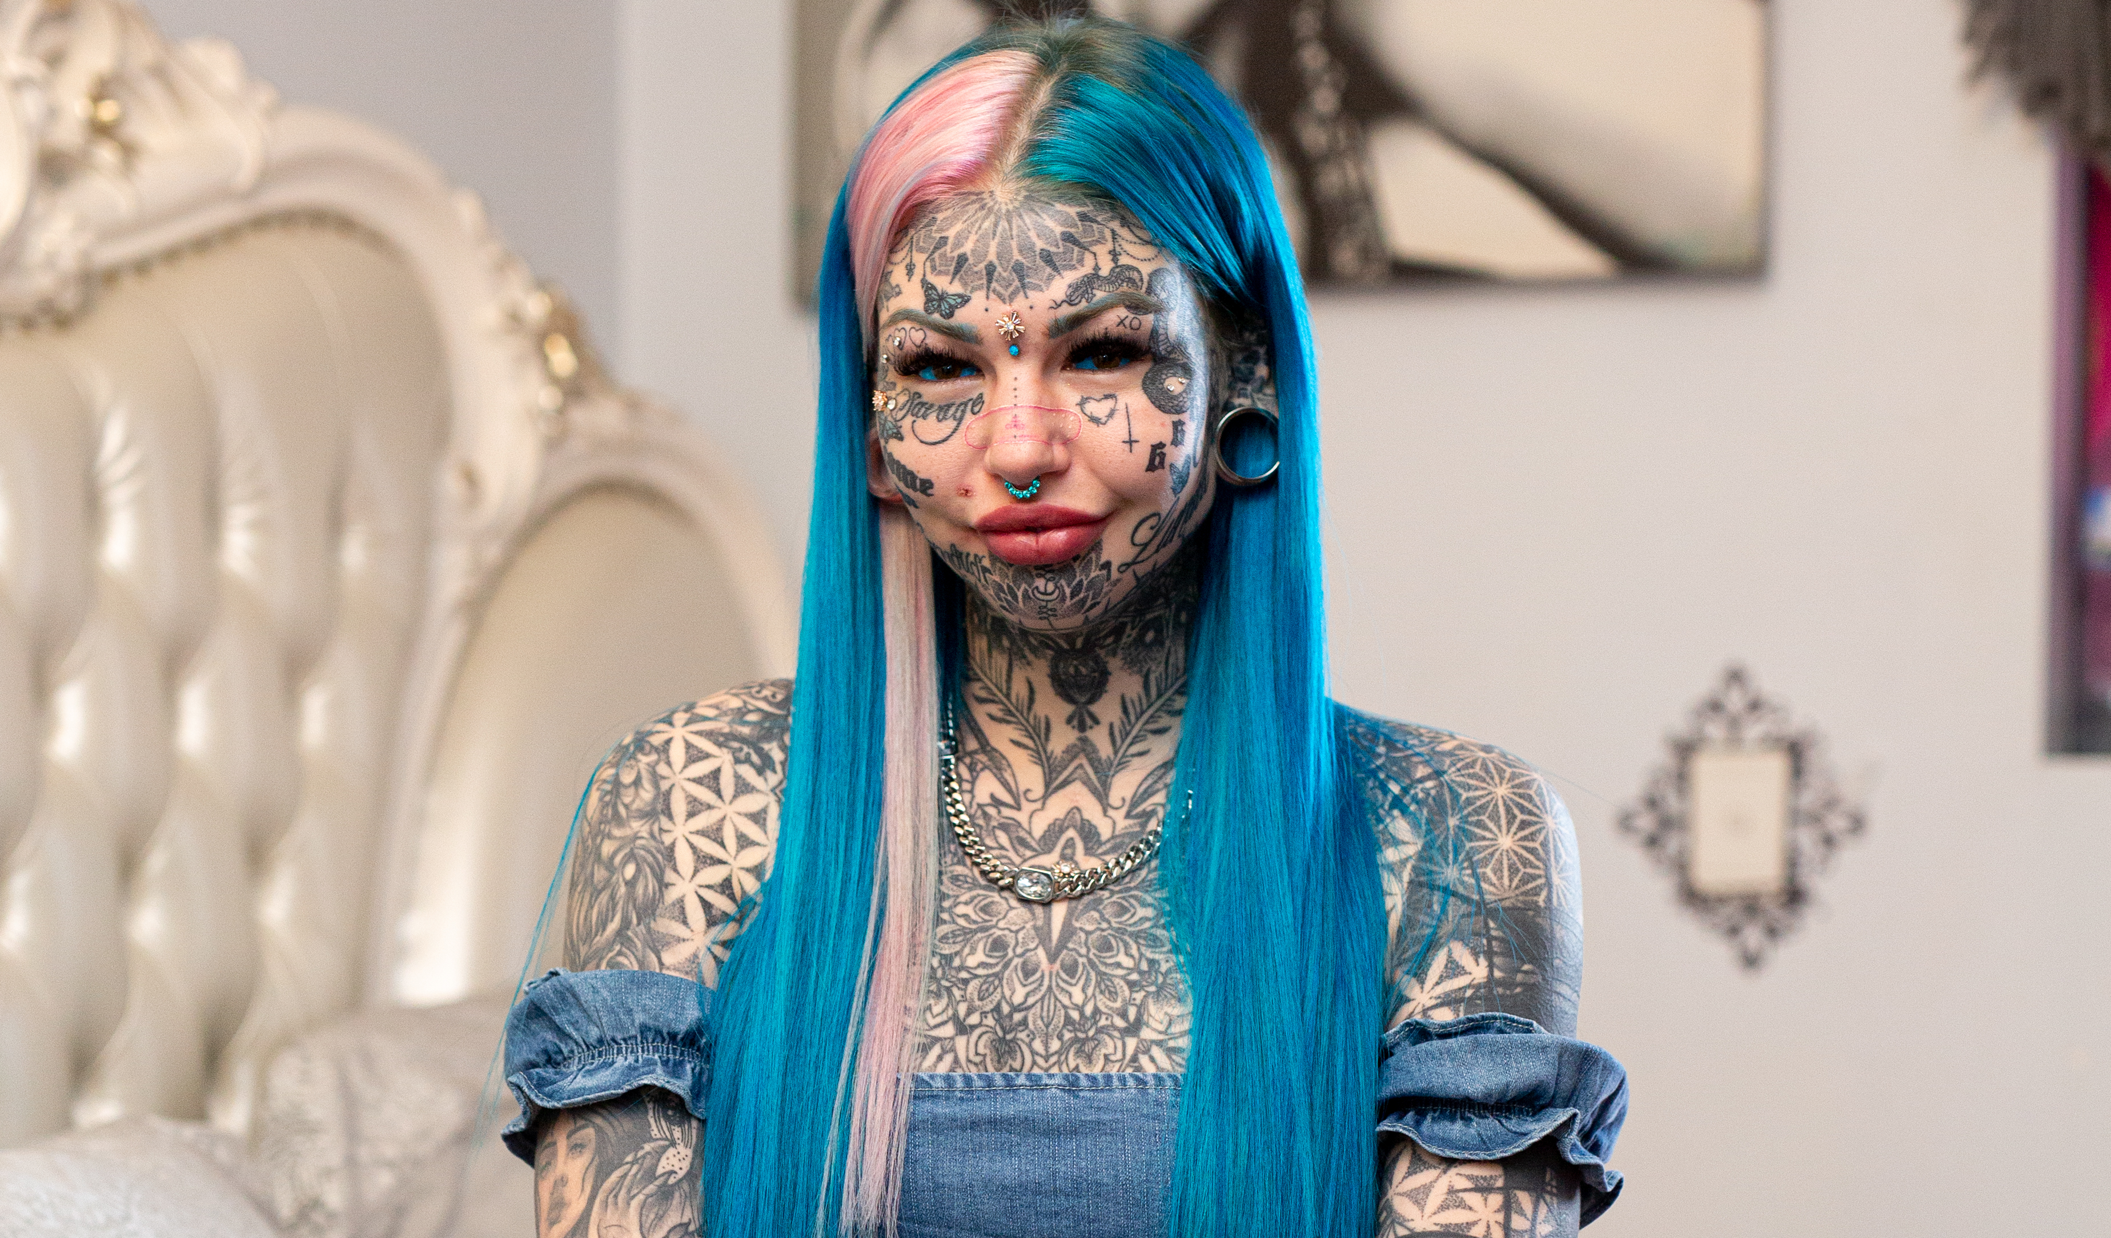 Women covered in tattoos